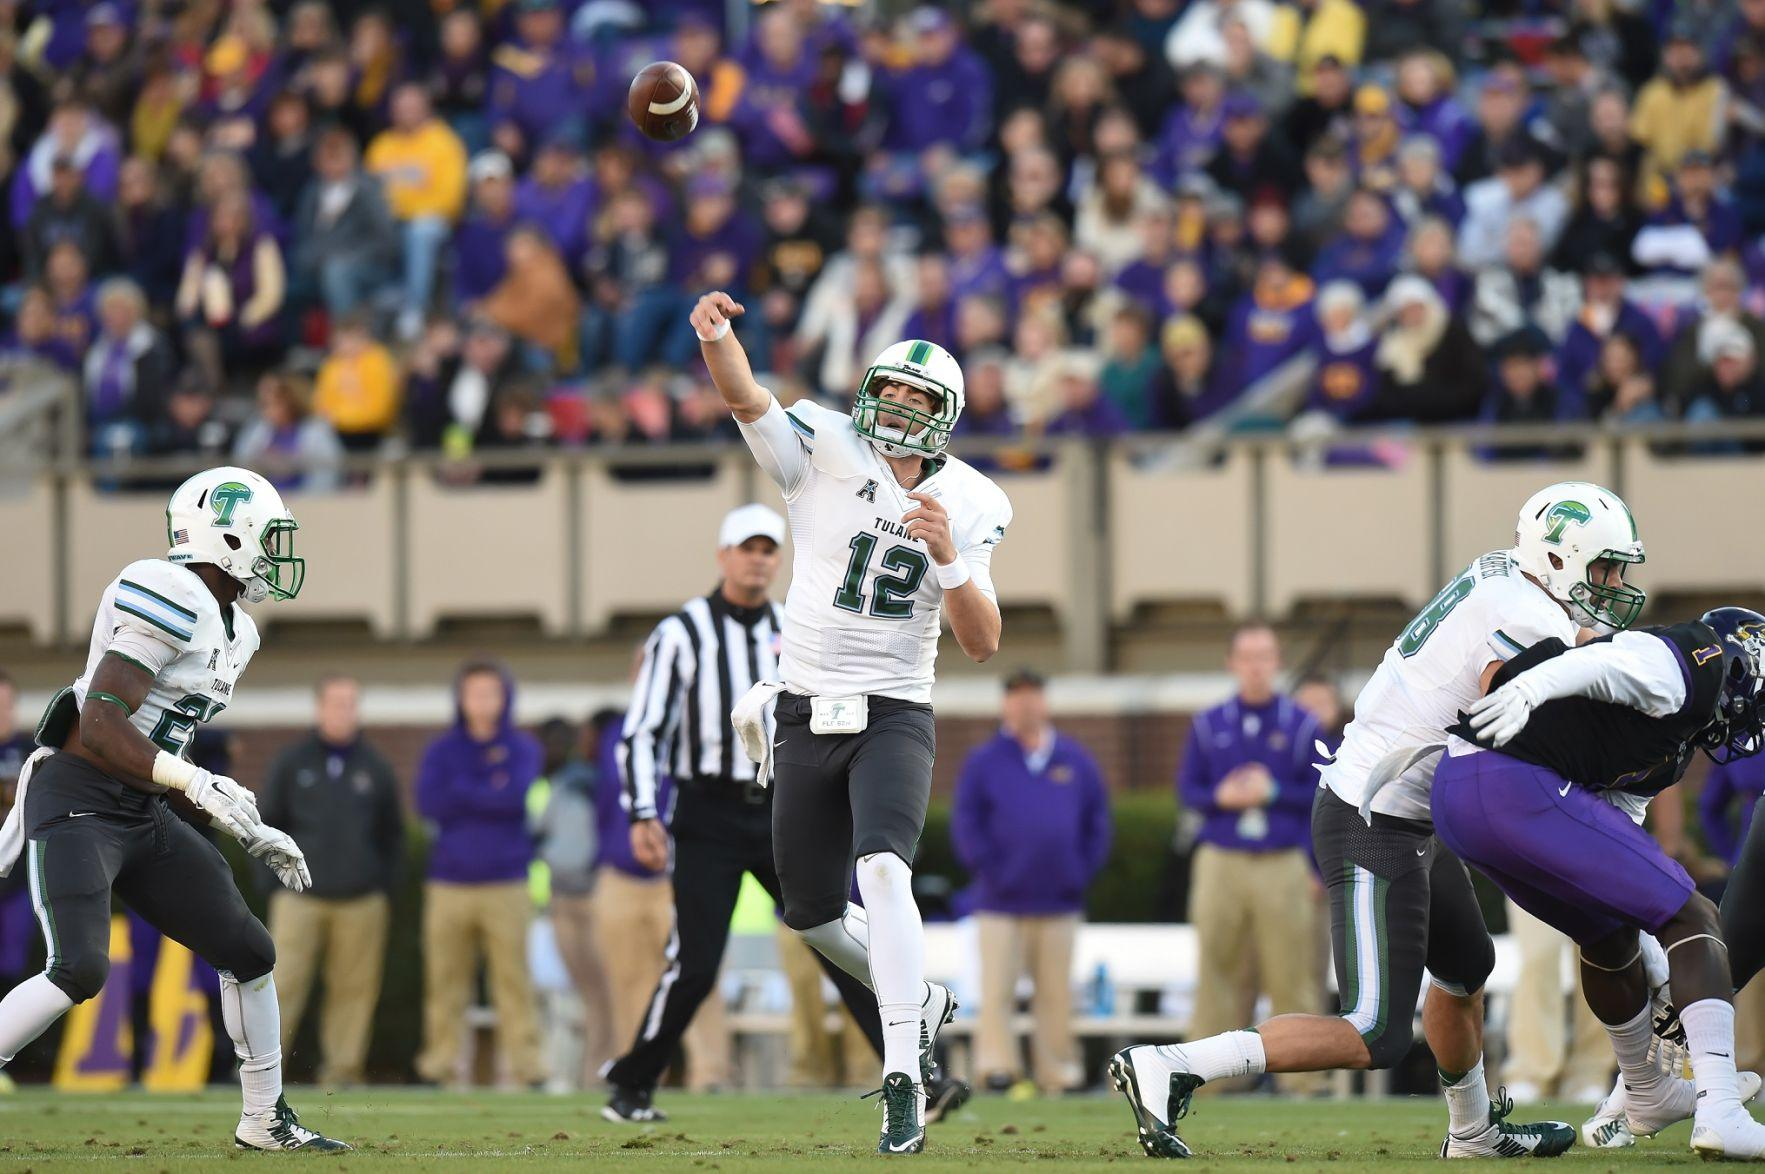 Tanner Lee throws the ball in a 34-6 loss at East Carolina Nov. 22 in Greenville, NC. Lee has thrown for 1,853 yards with a 55.8 percent completion rate along with 12 touchdowns and 14 interceptions this season.